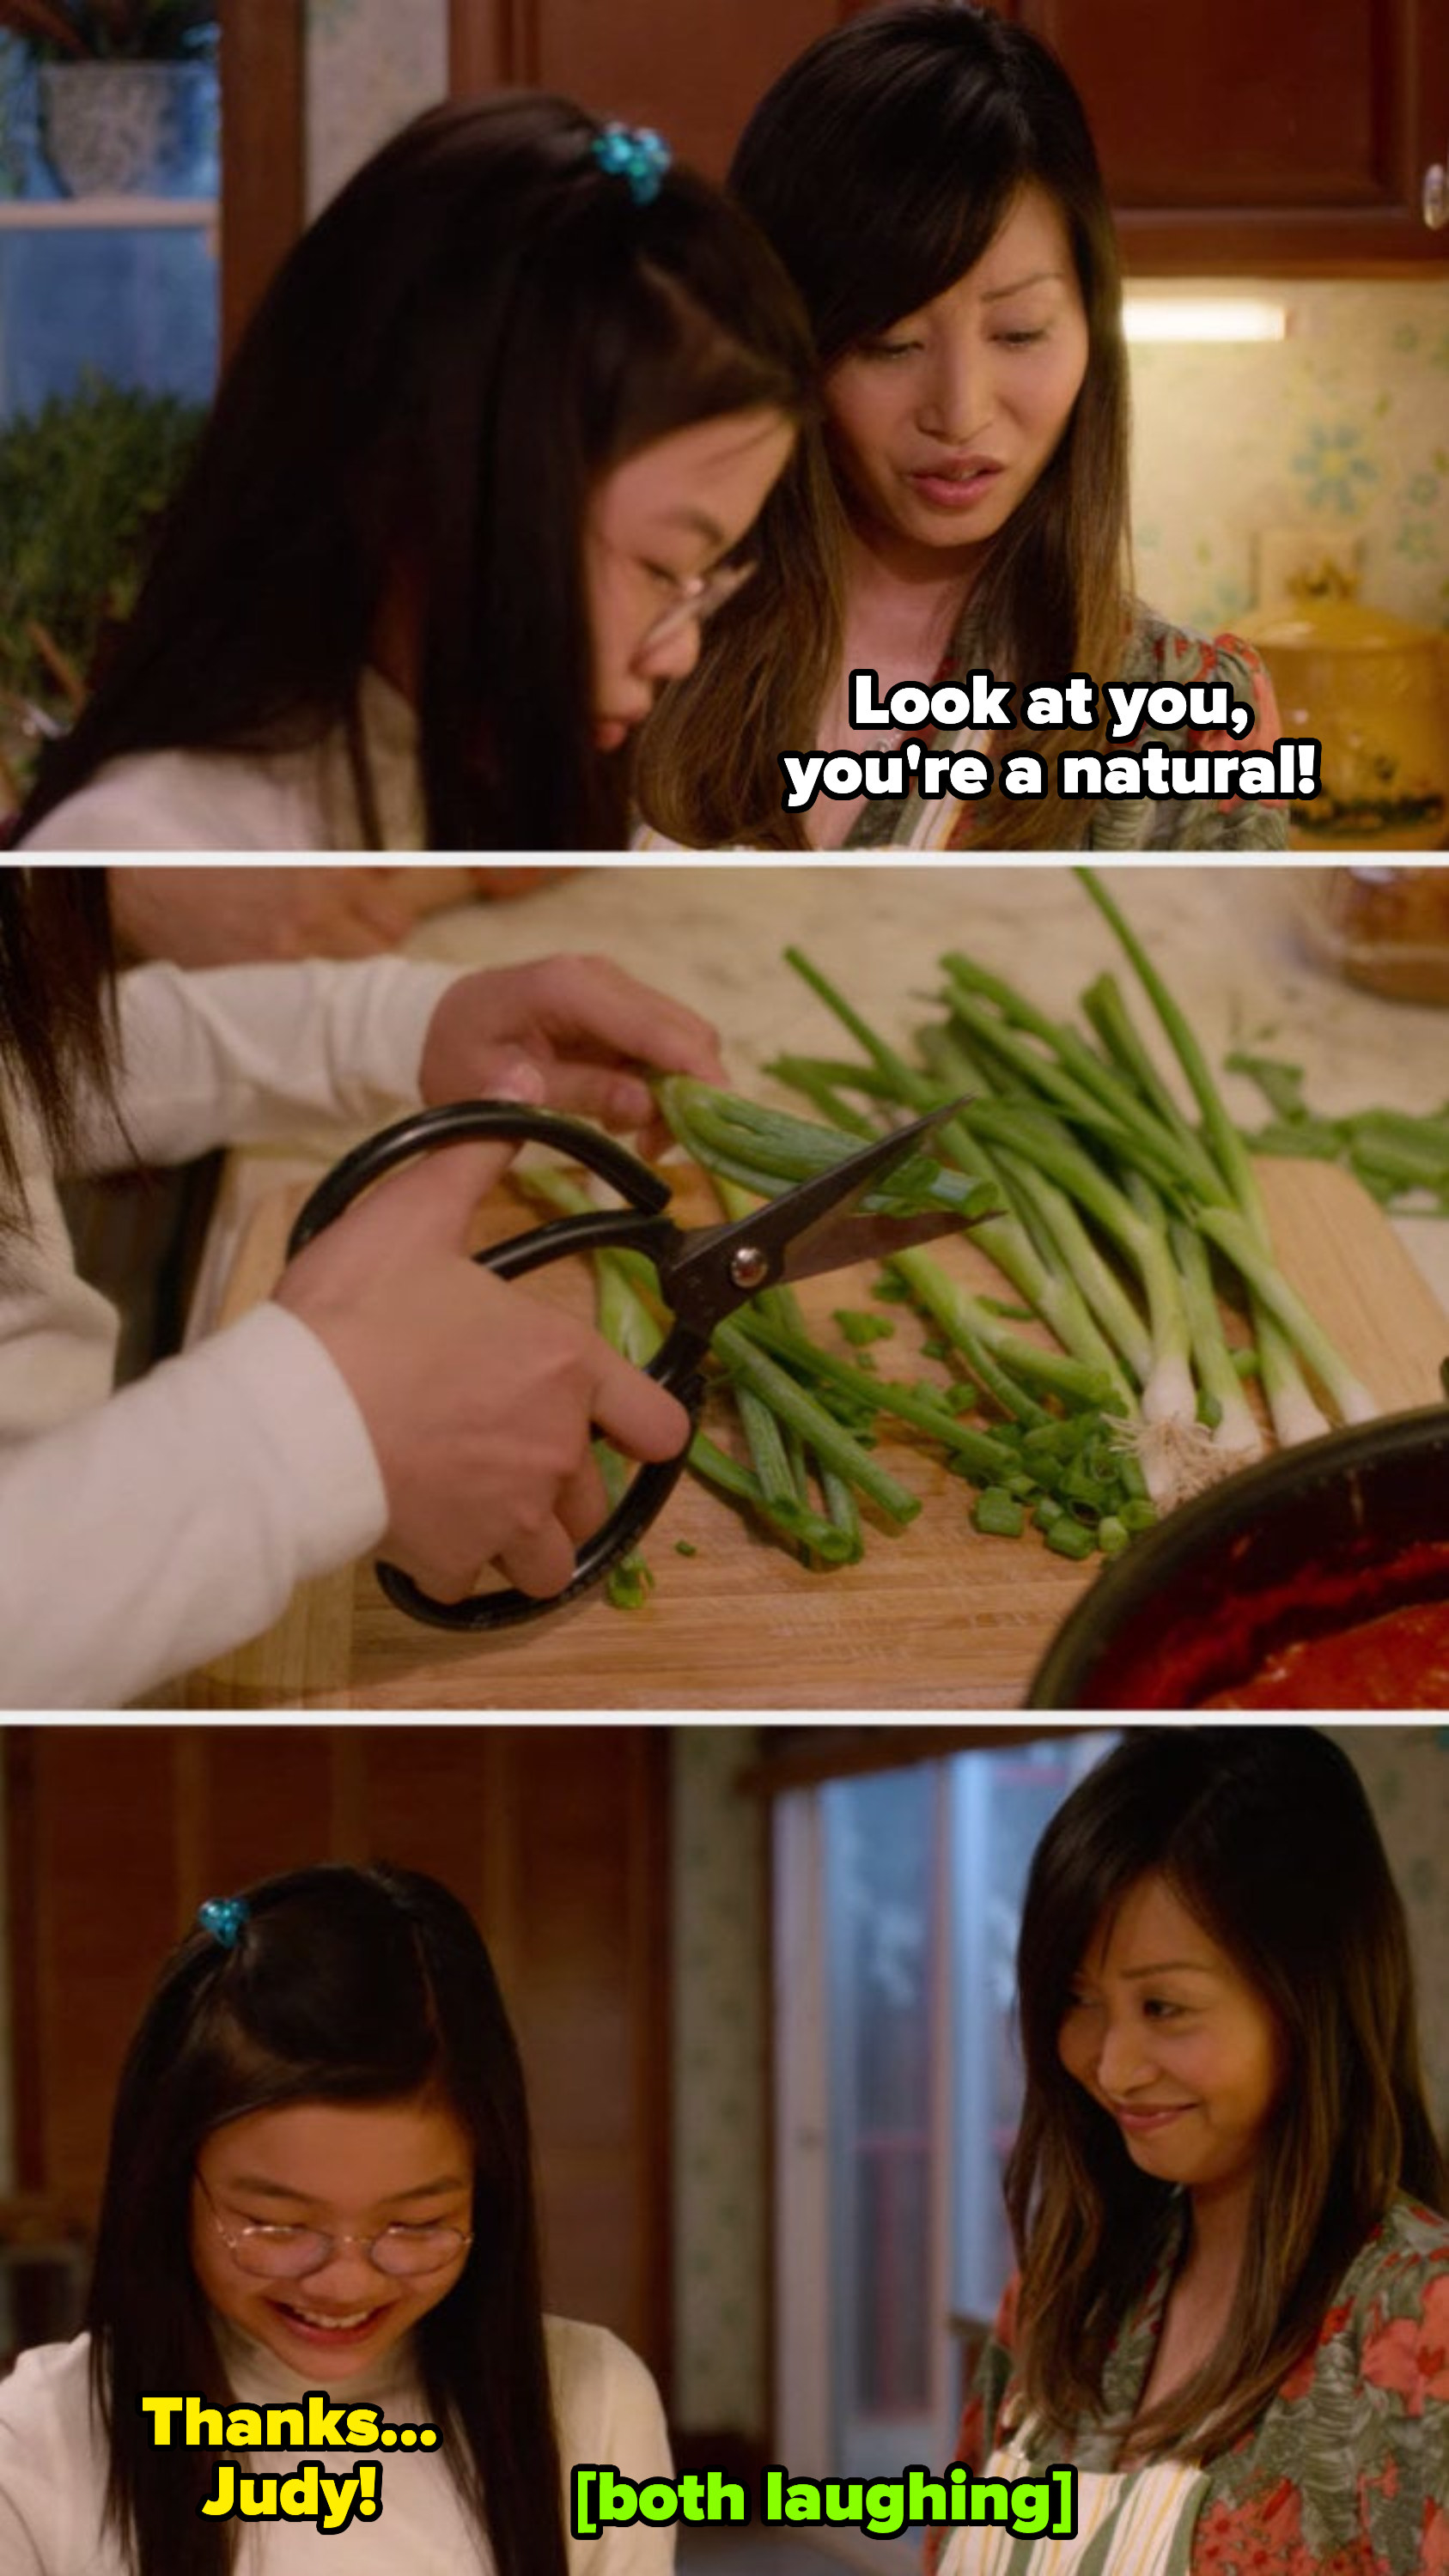 """Sasha cutting green onions as Judy tells her with love: """"Look at you, you're a natural!"""""""